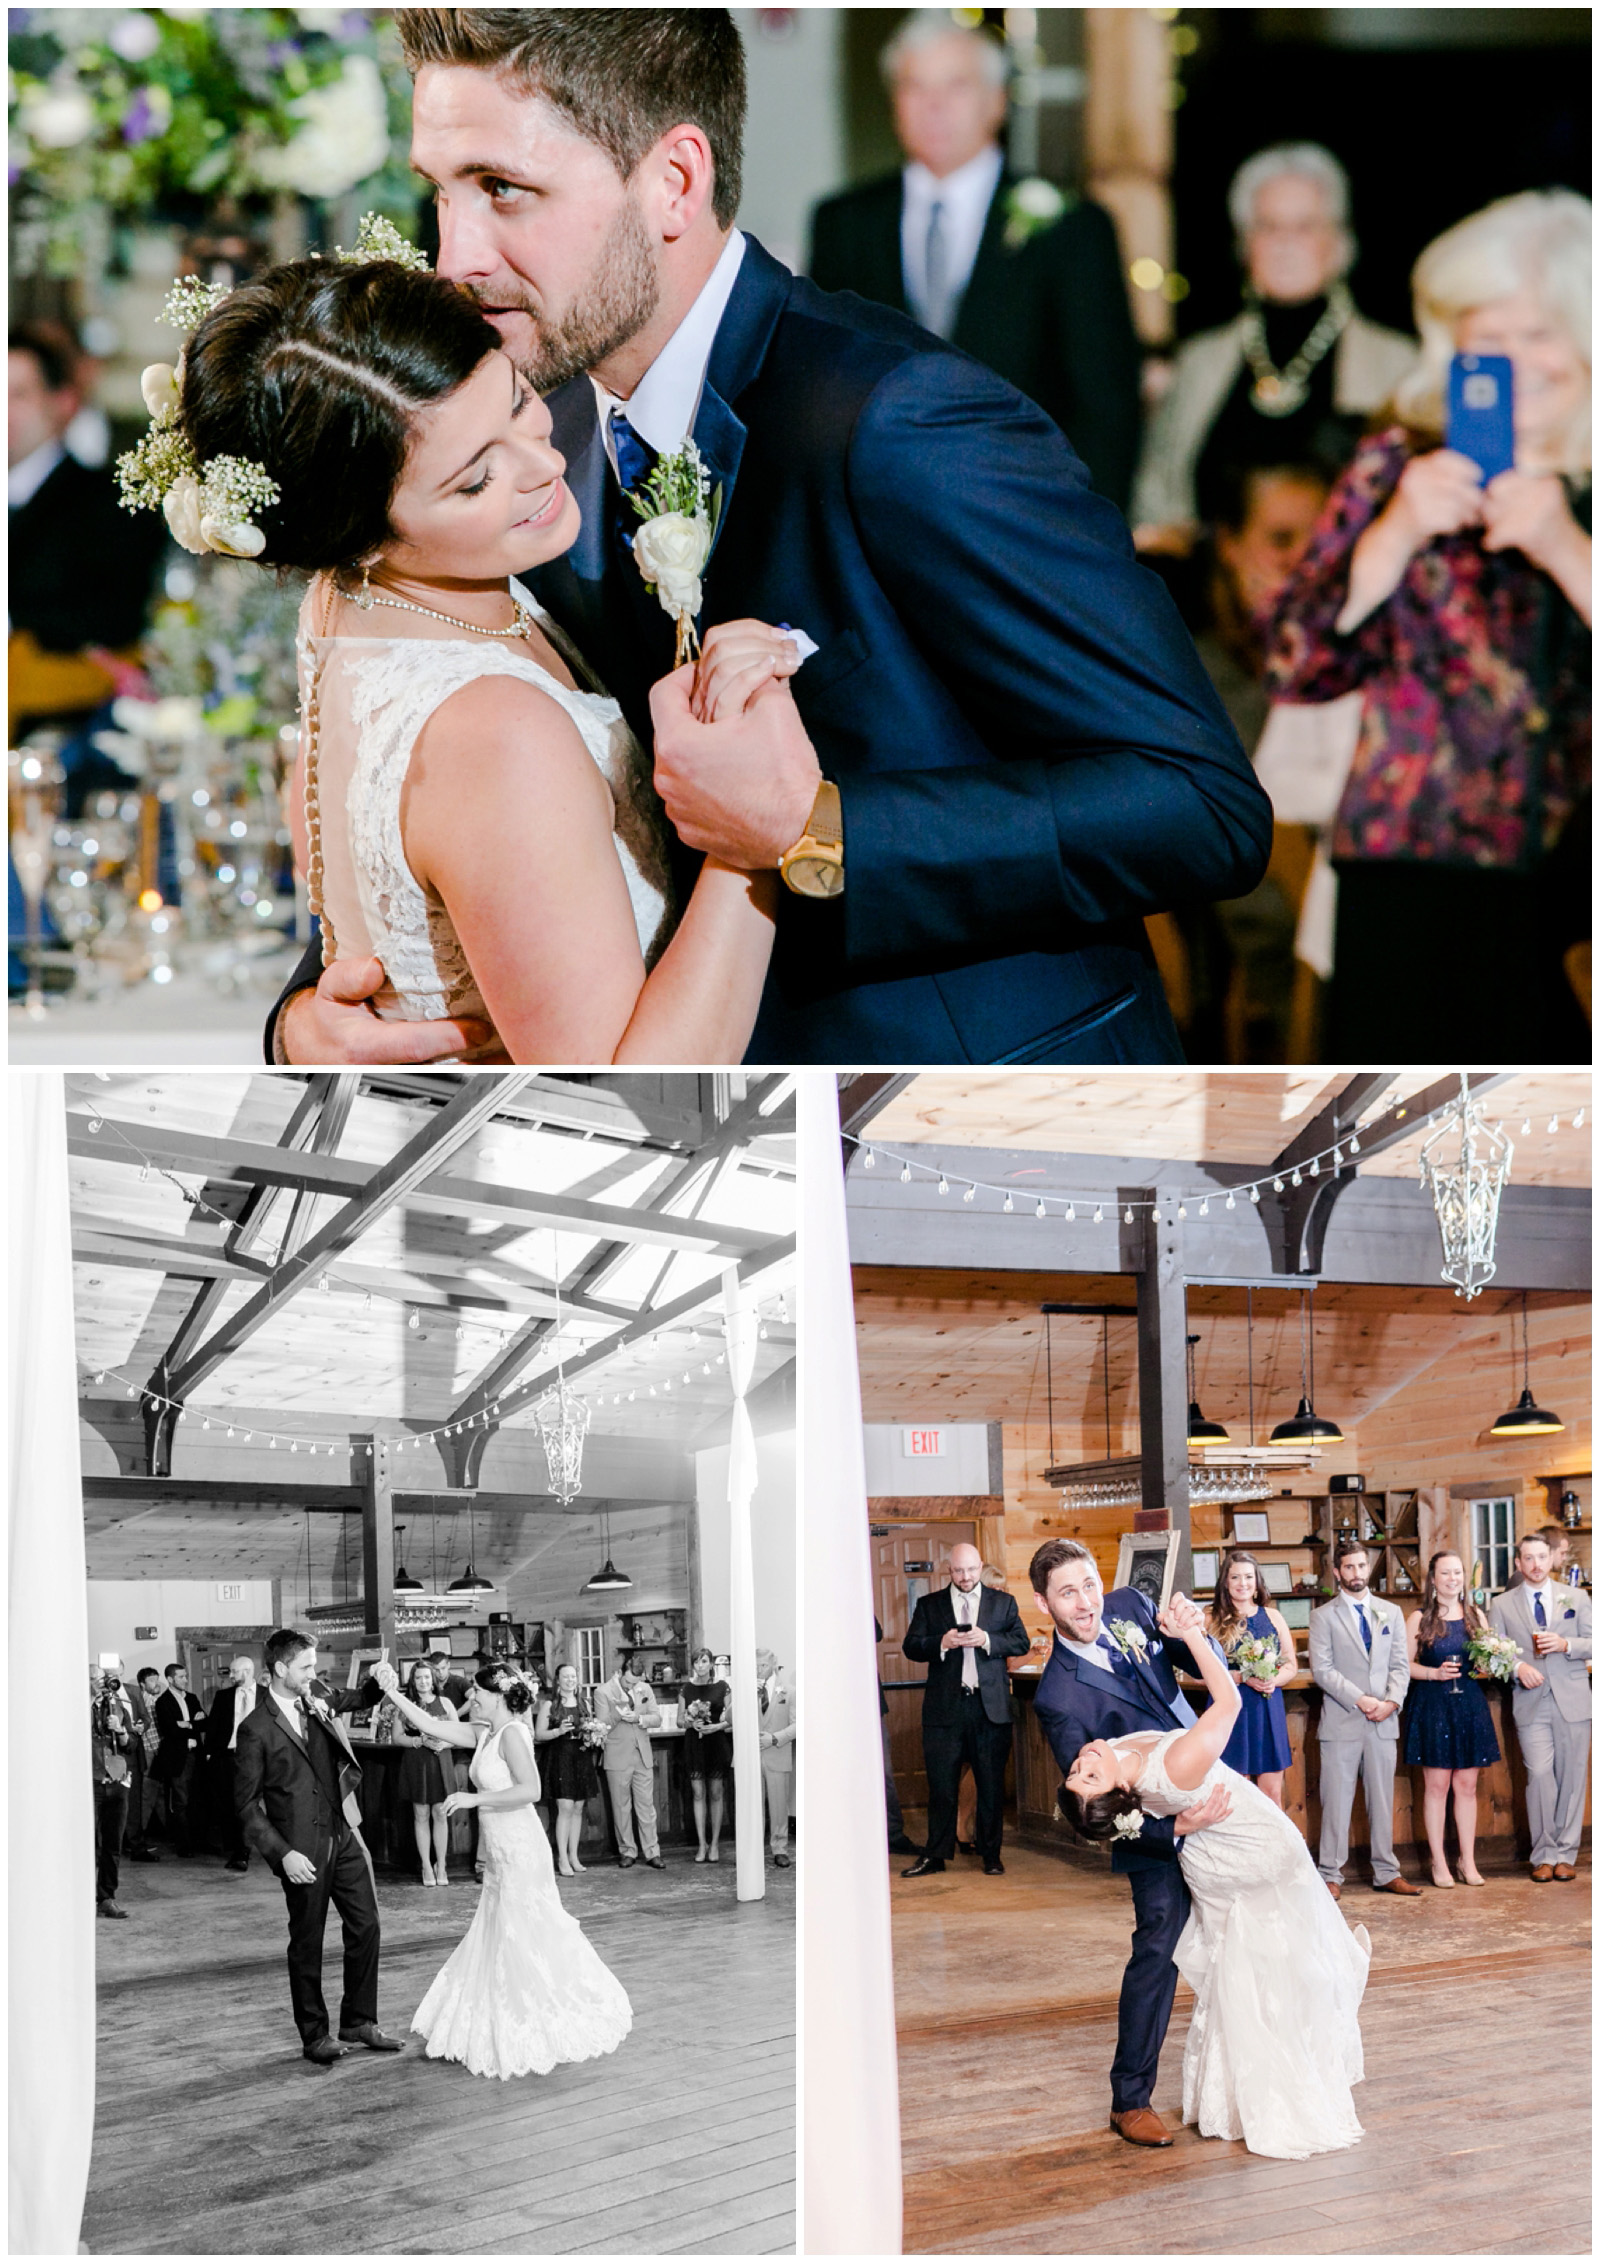 R&G_AtlantaWeddingPhotographer_WhiteOaksBarn_0037